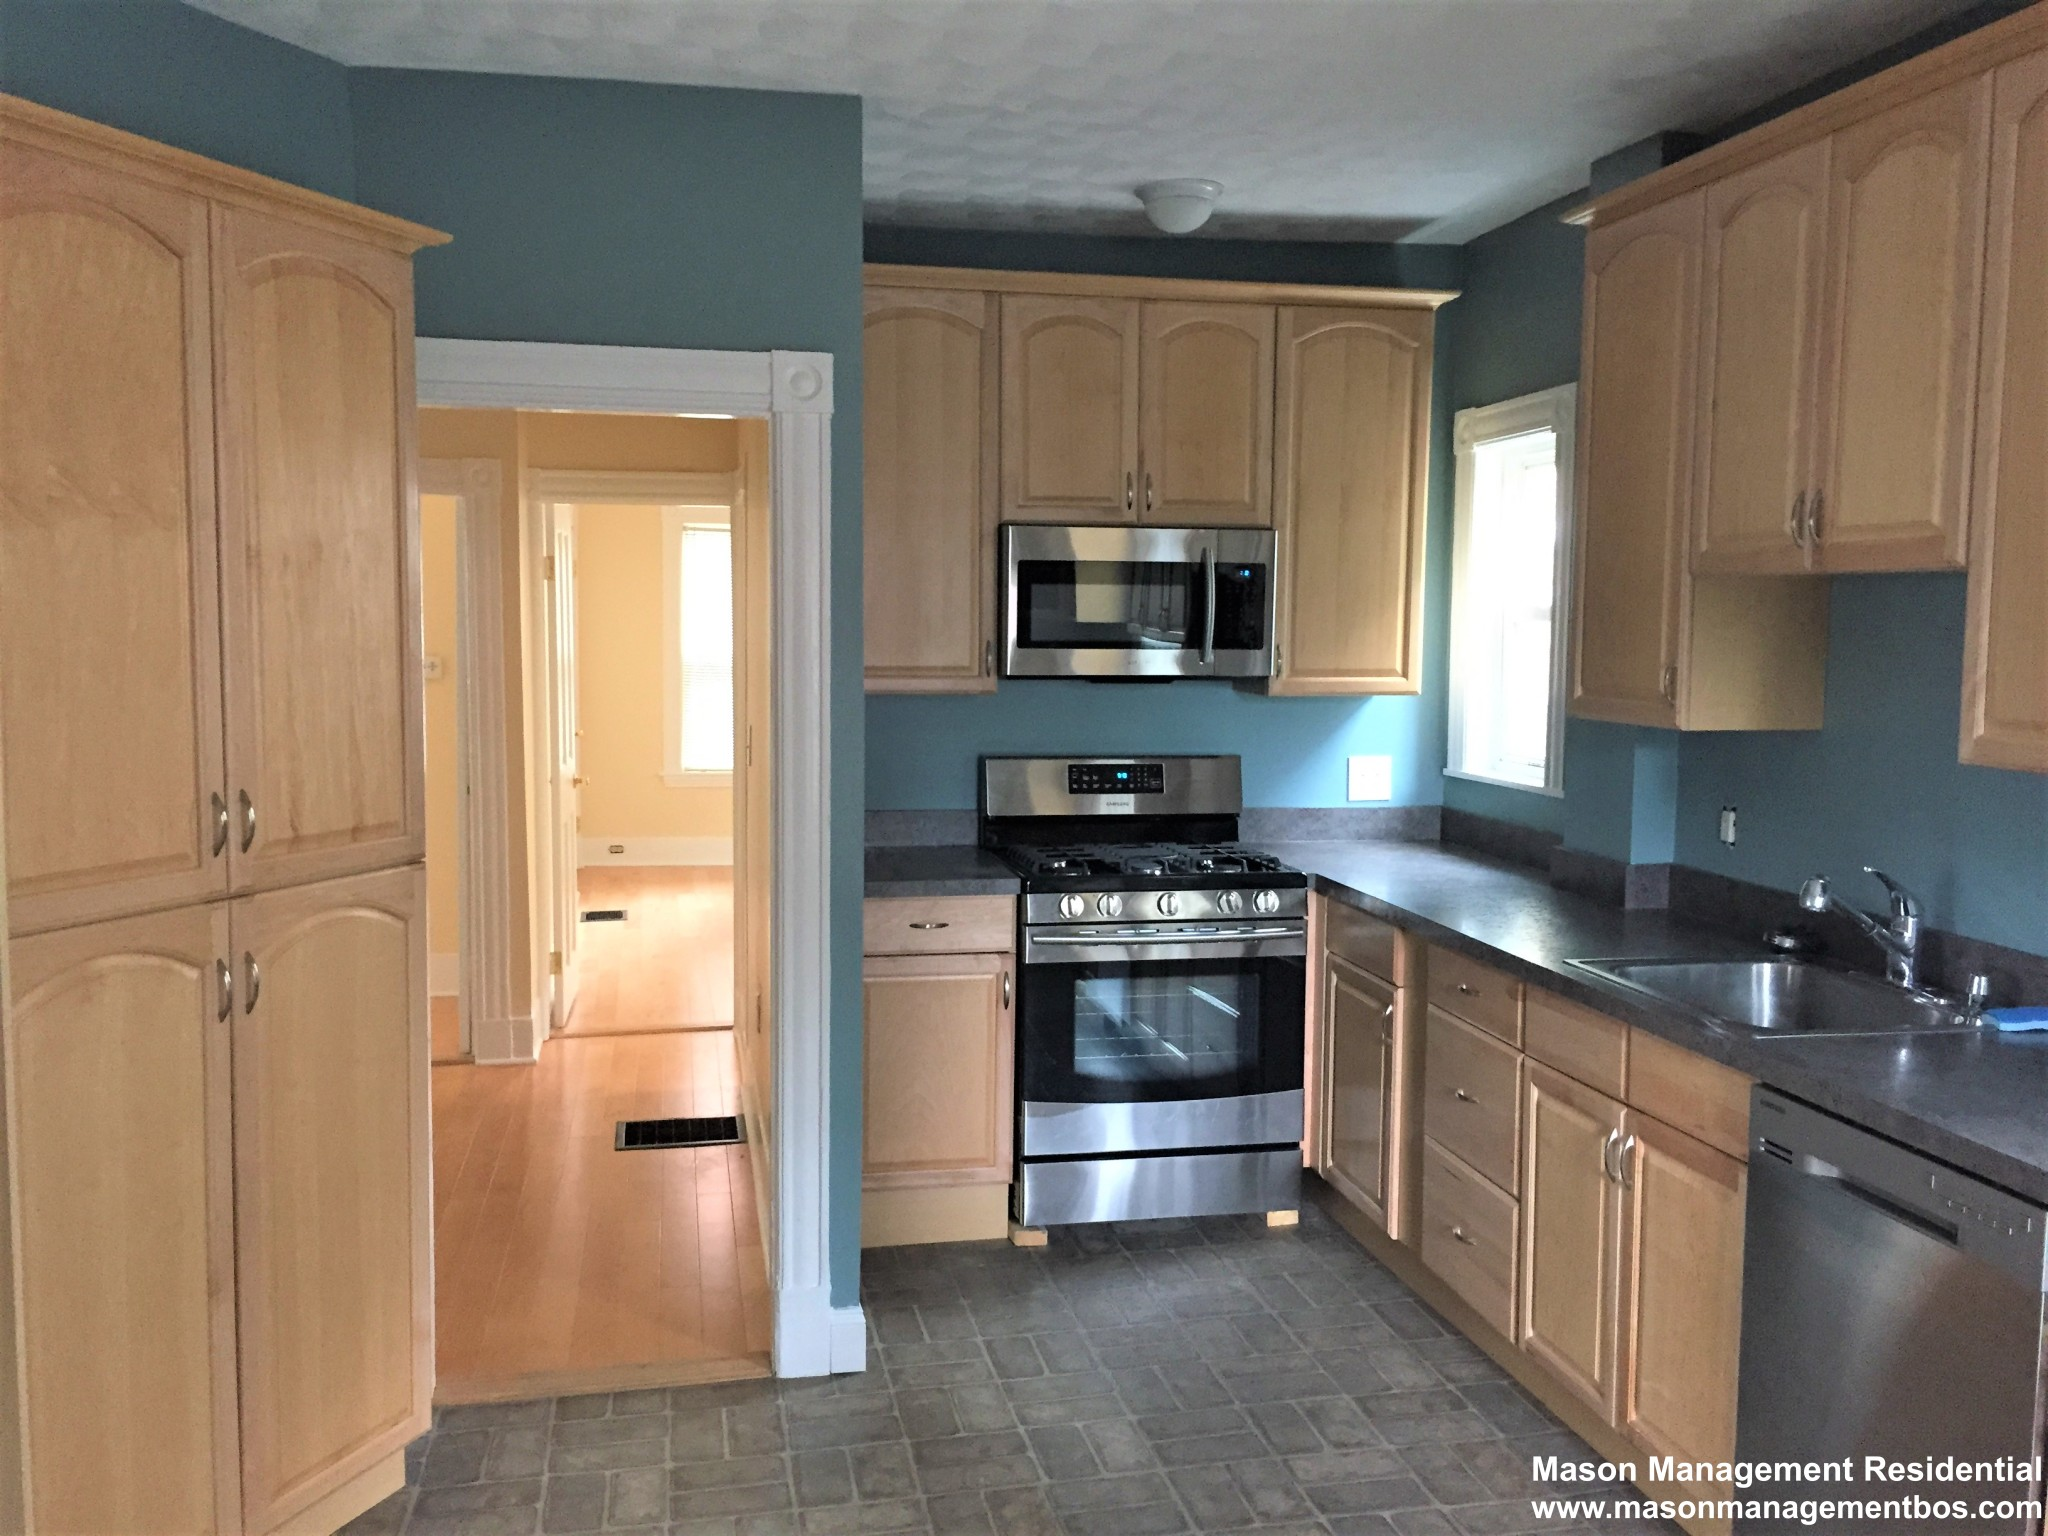 2 Beds, 1 Bath apartment in Somerville for $2,500